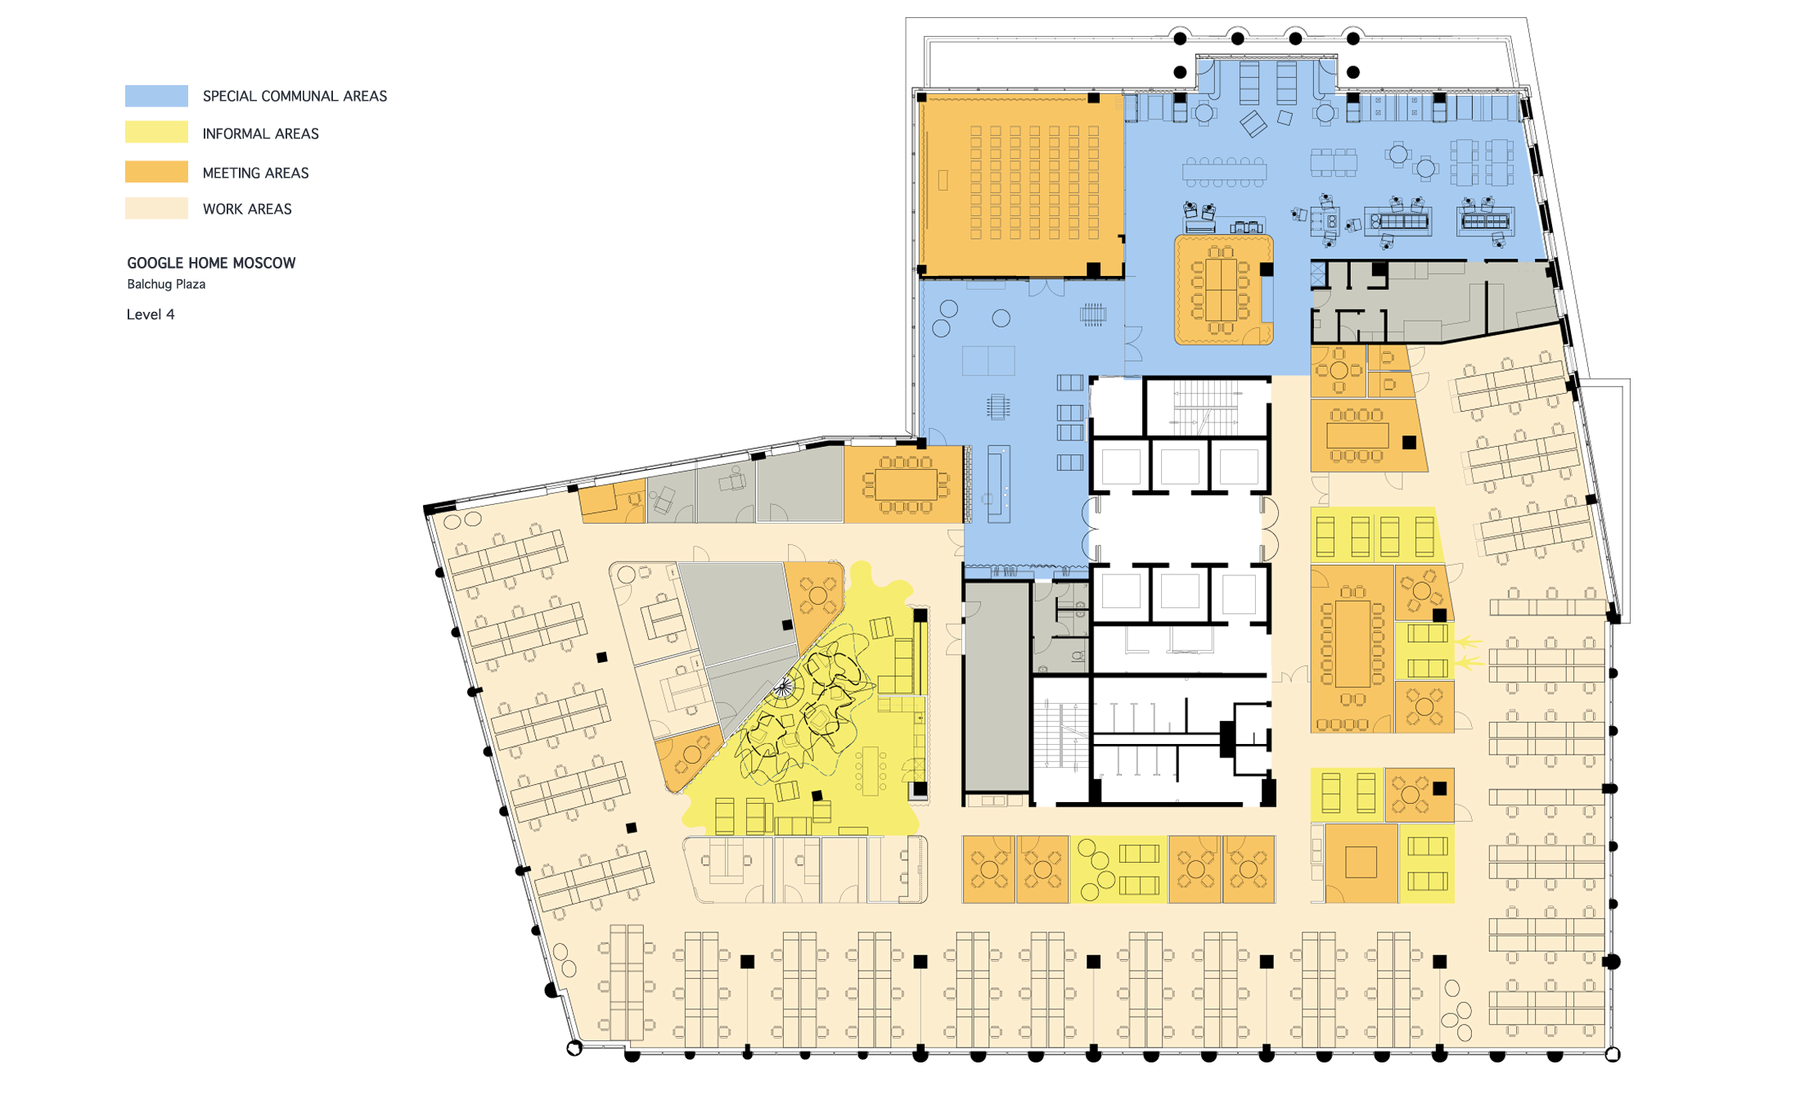 Google floor plan floor plan level 4 plan 1800 1105 workplace pinterest google Google floor plan